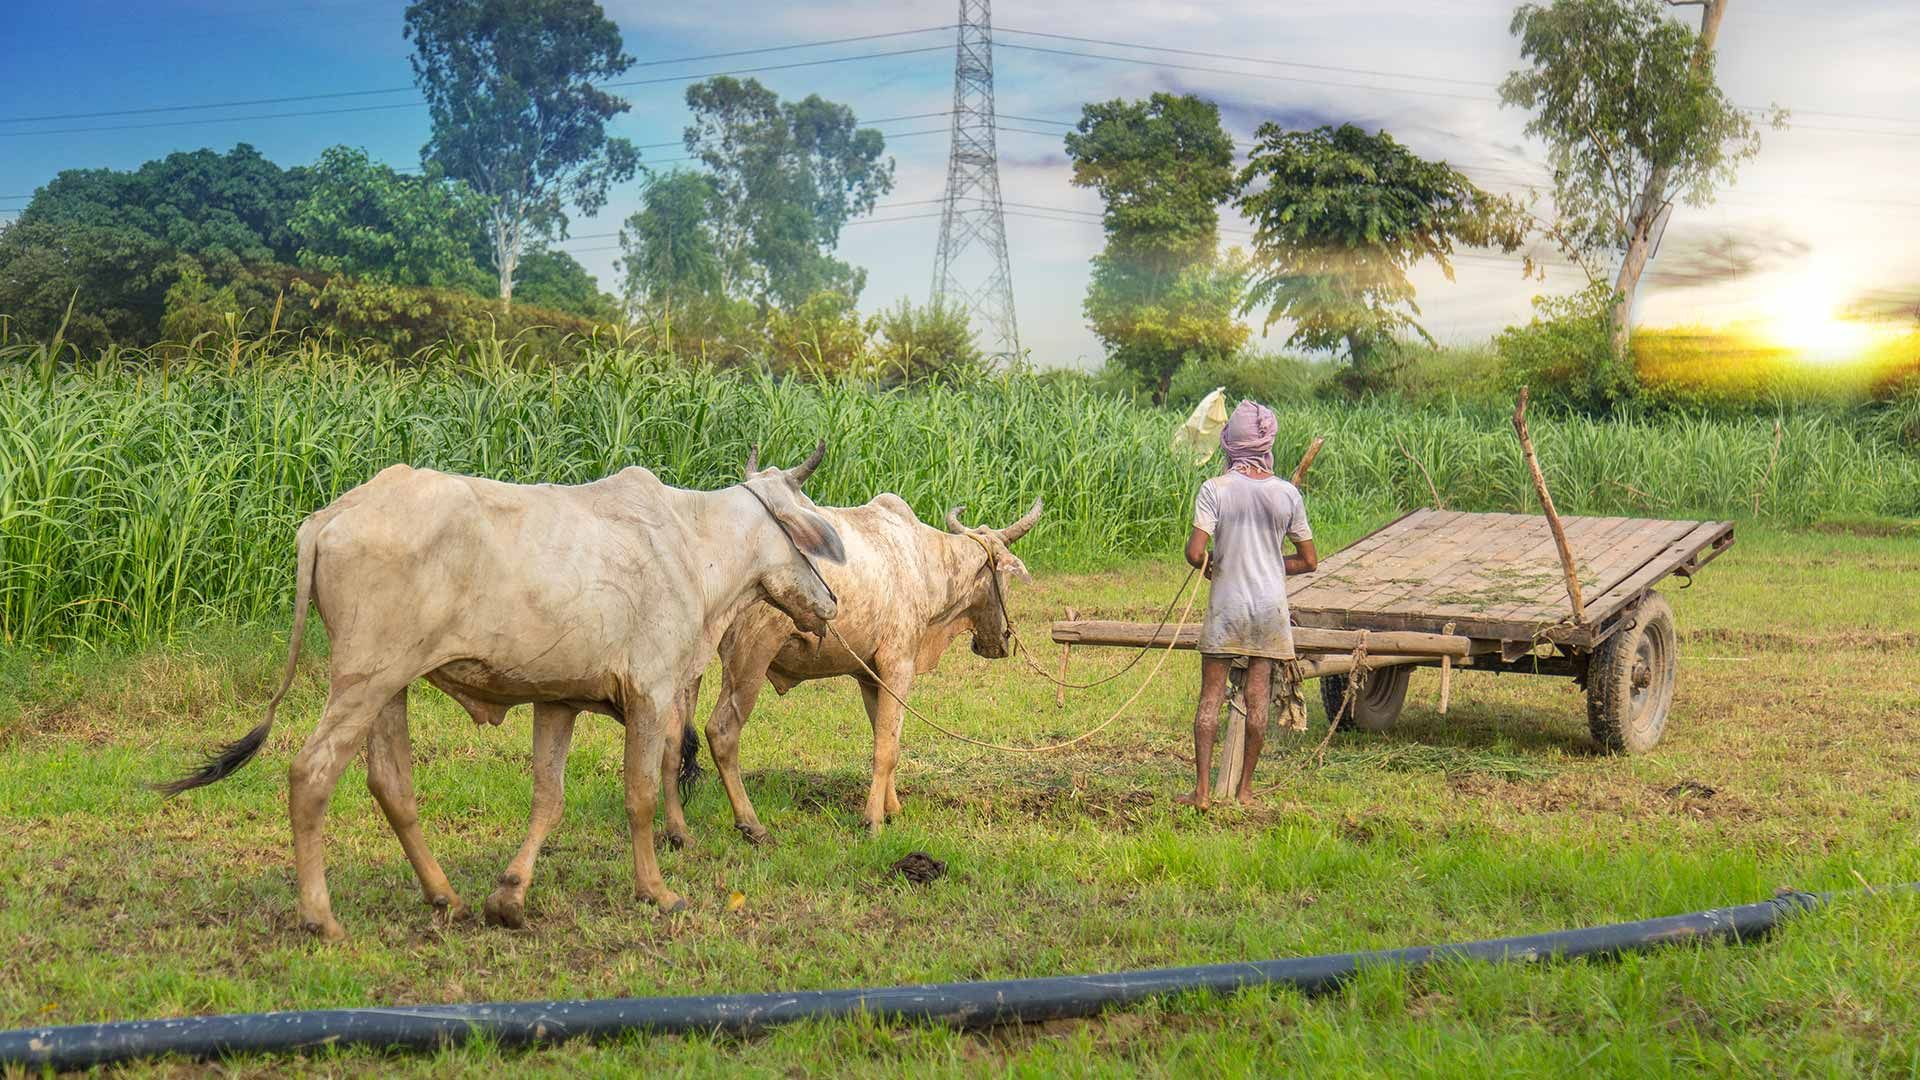 a farmer in a field with cows